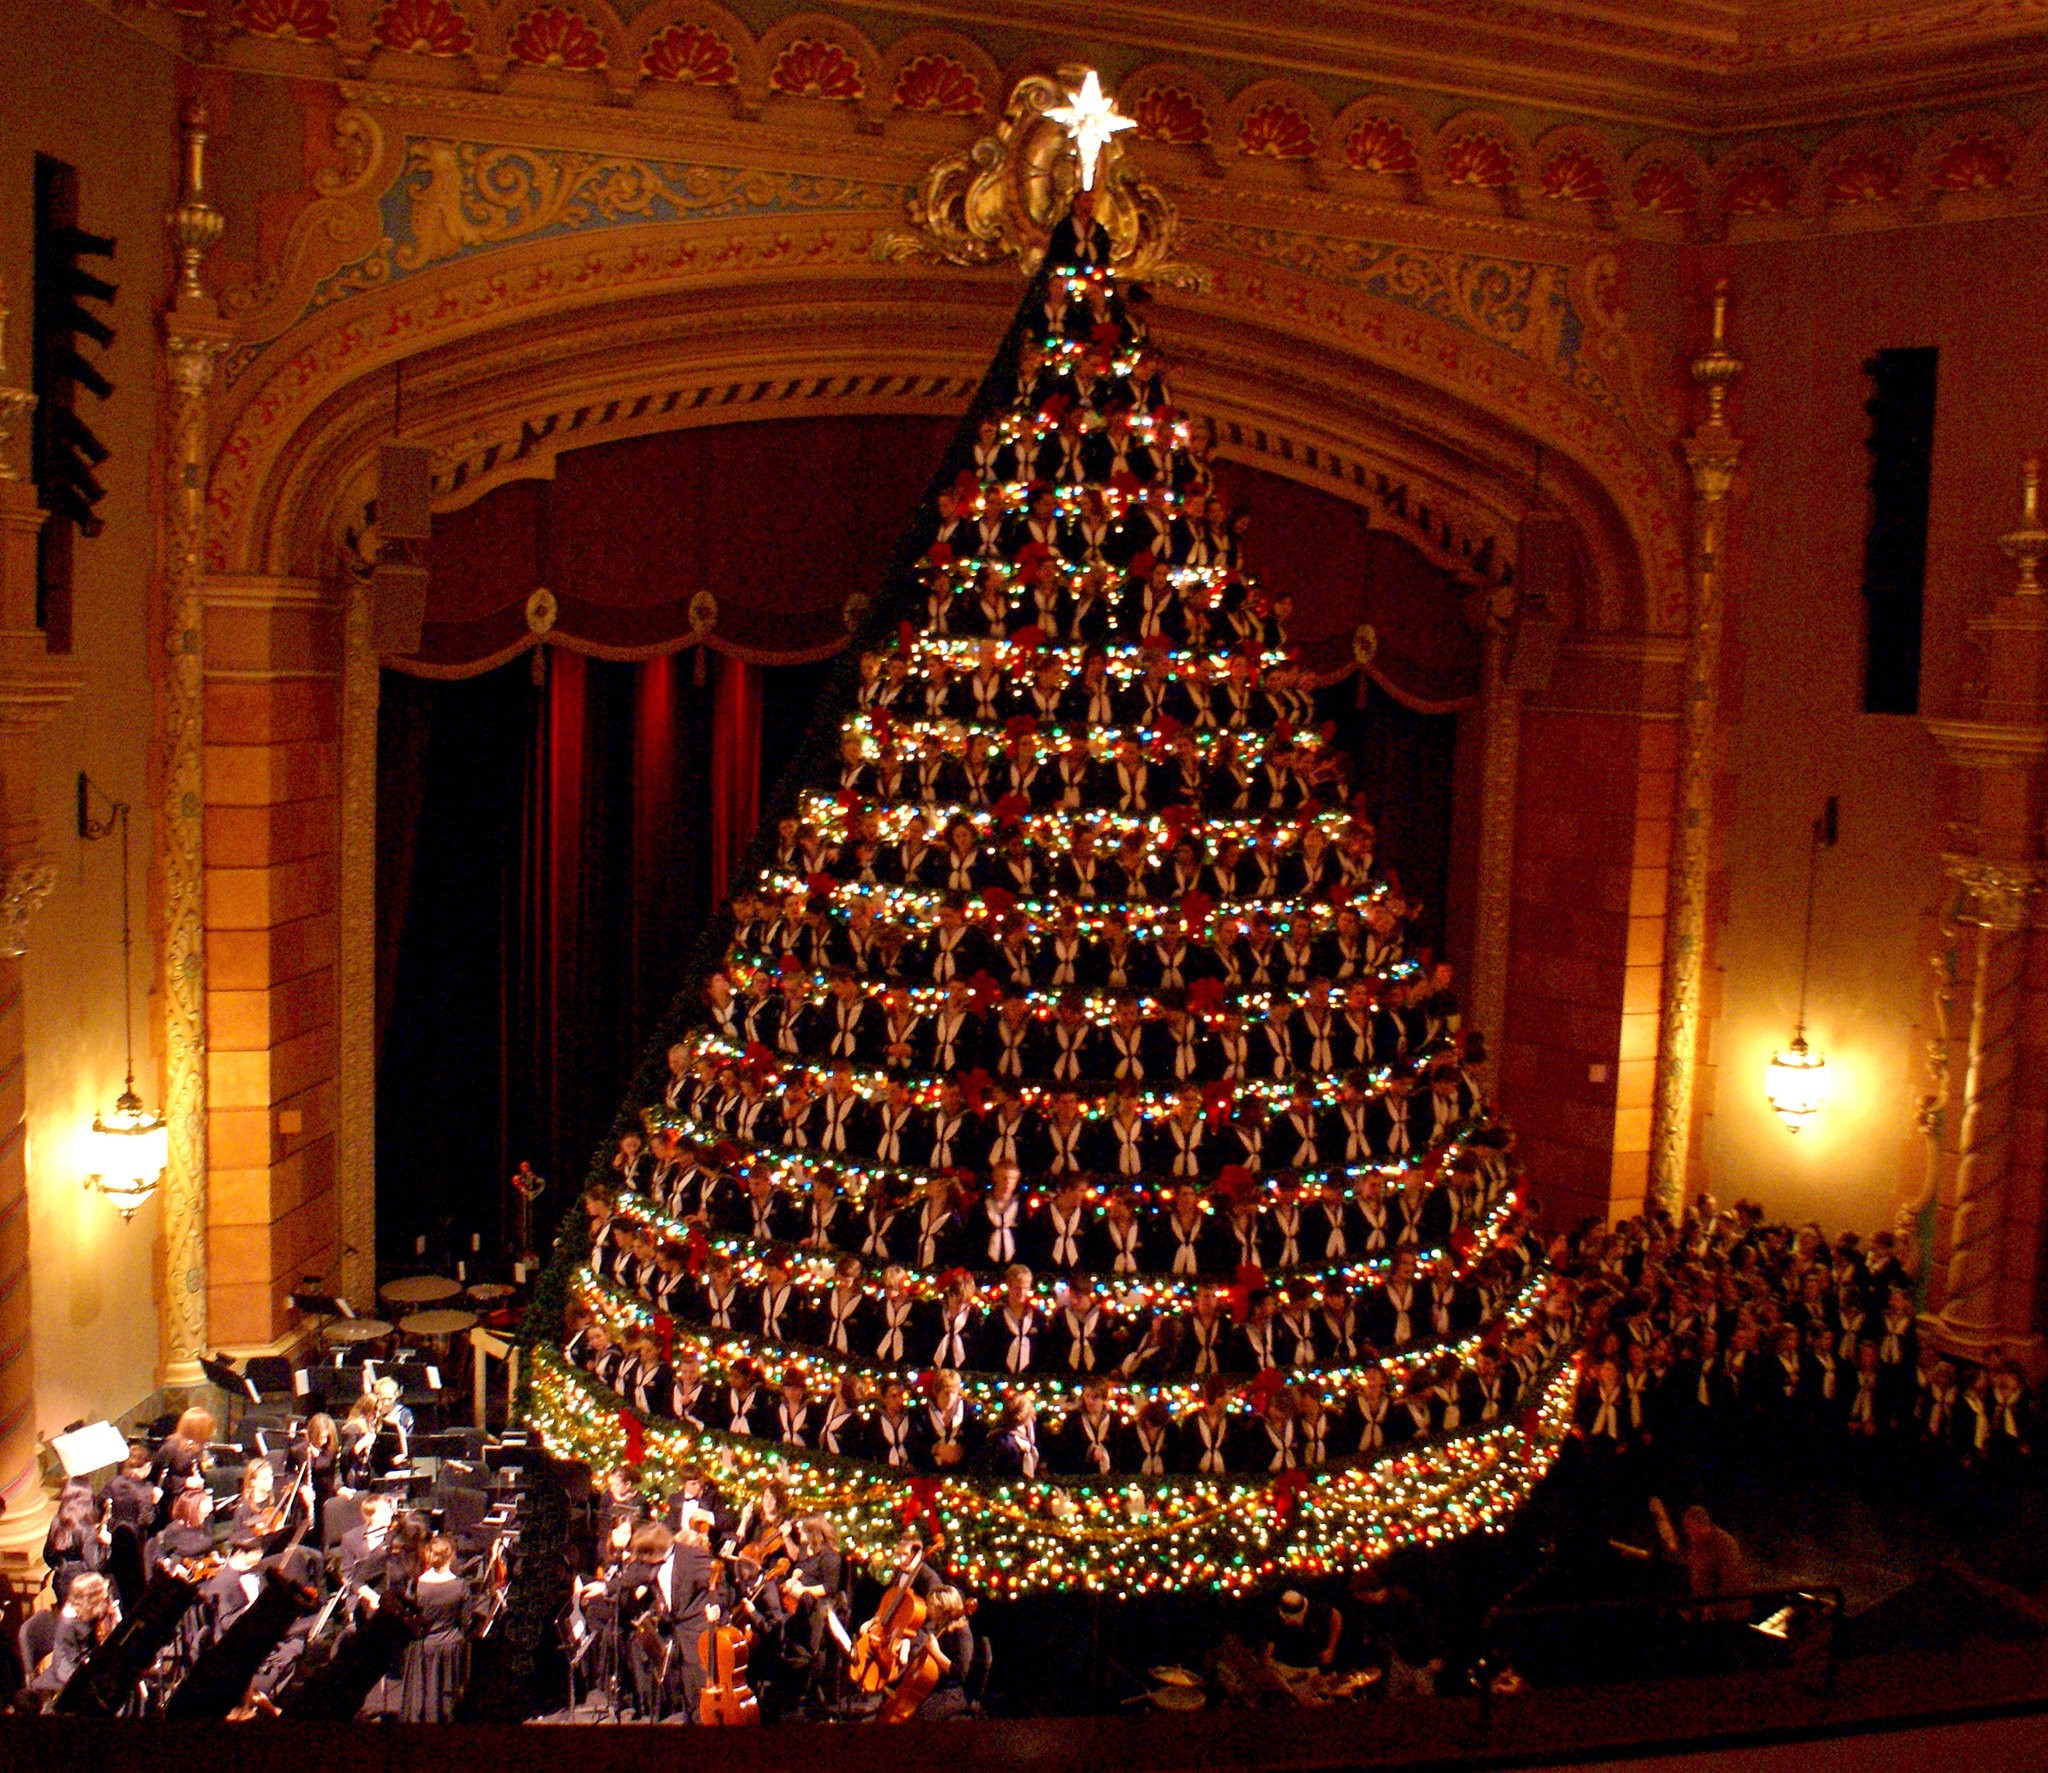 Singing Christmas Tree Muskegon 2021 Travel Channel To Film Singing Christmas Tree Concert For Upcoming Holiday Special Mlive Com